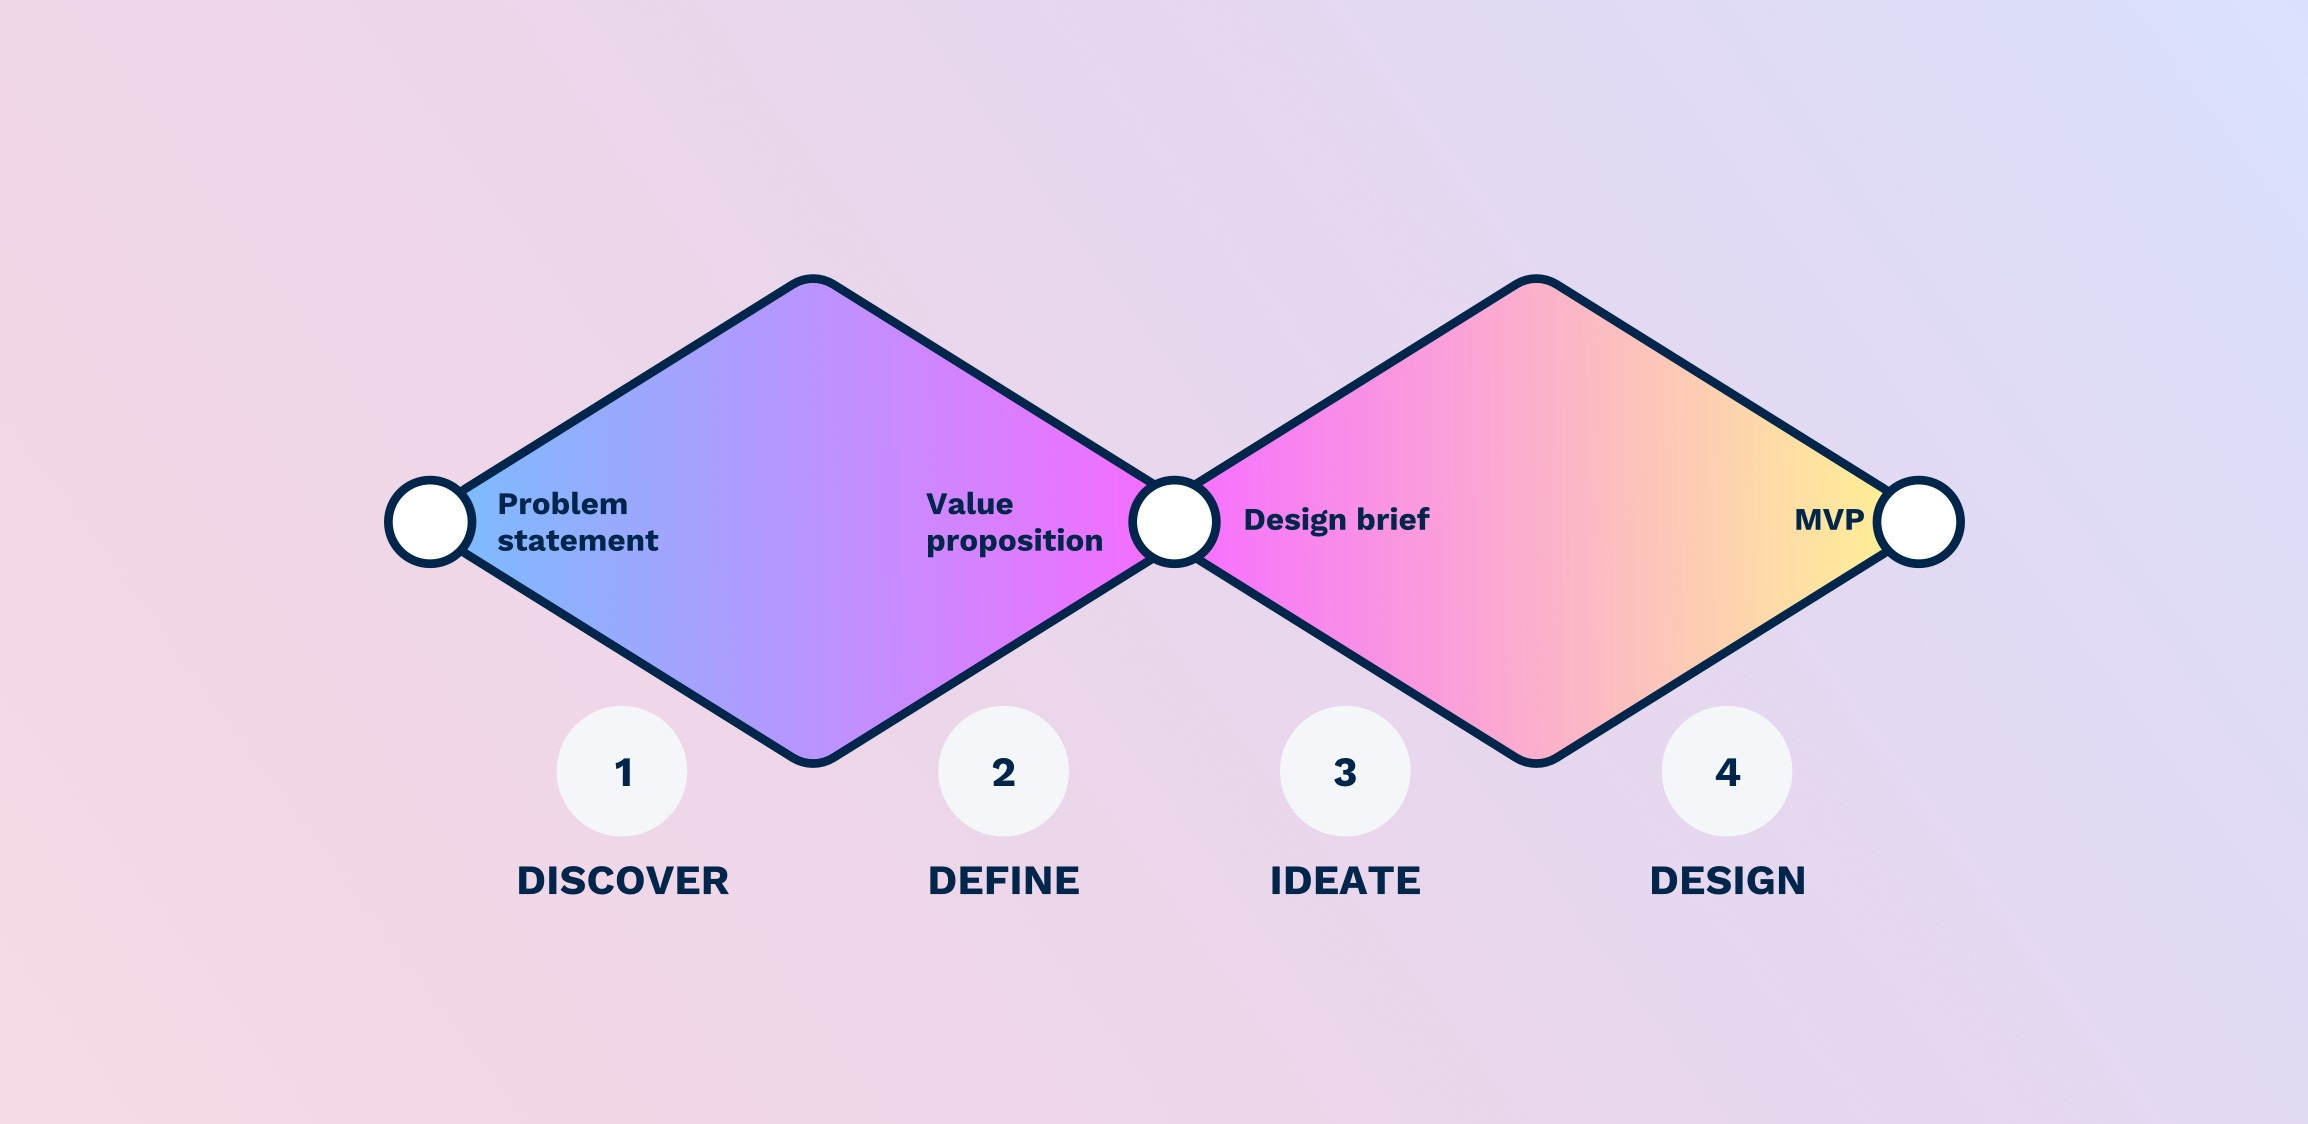 Illustration of the 'Double diamond' design process.